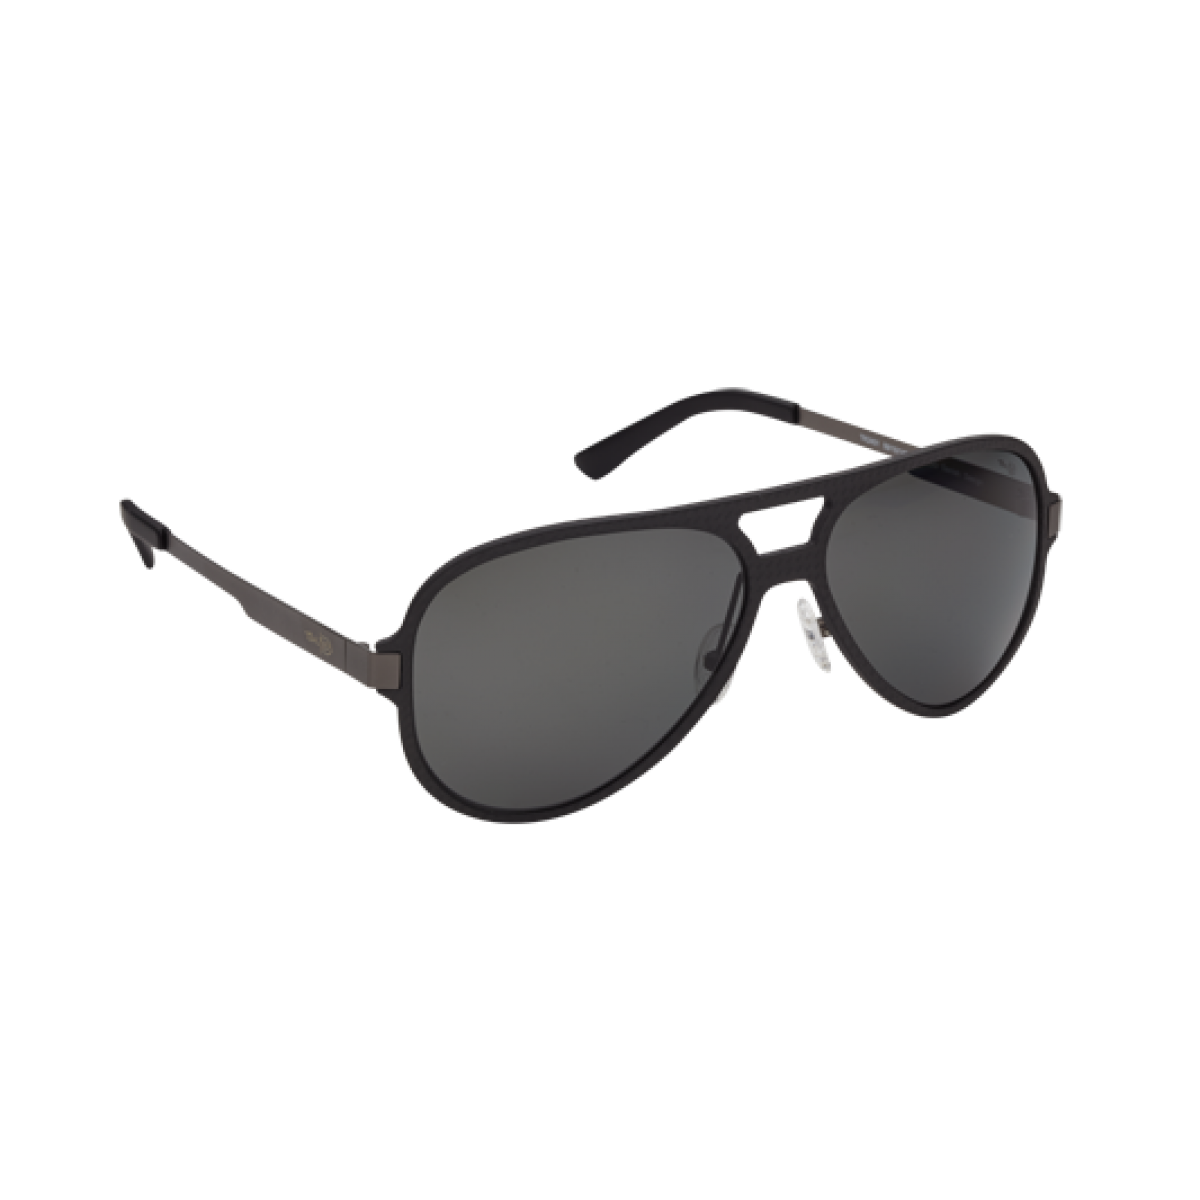 Tom Kristensen Solbrille Model TK2401 Polarized-30